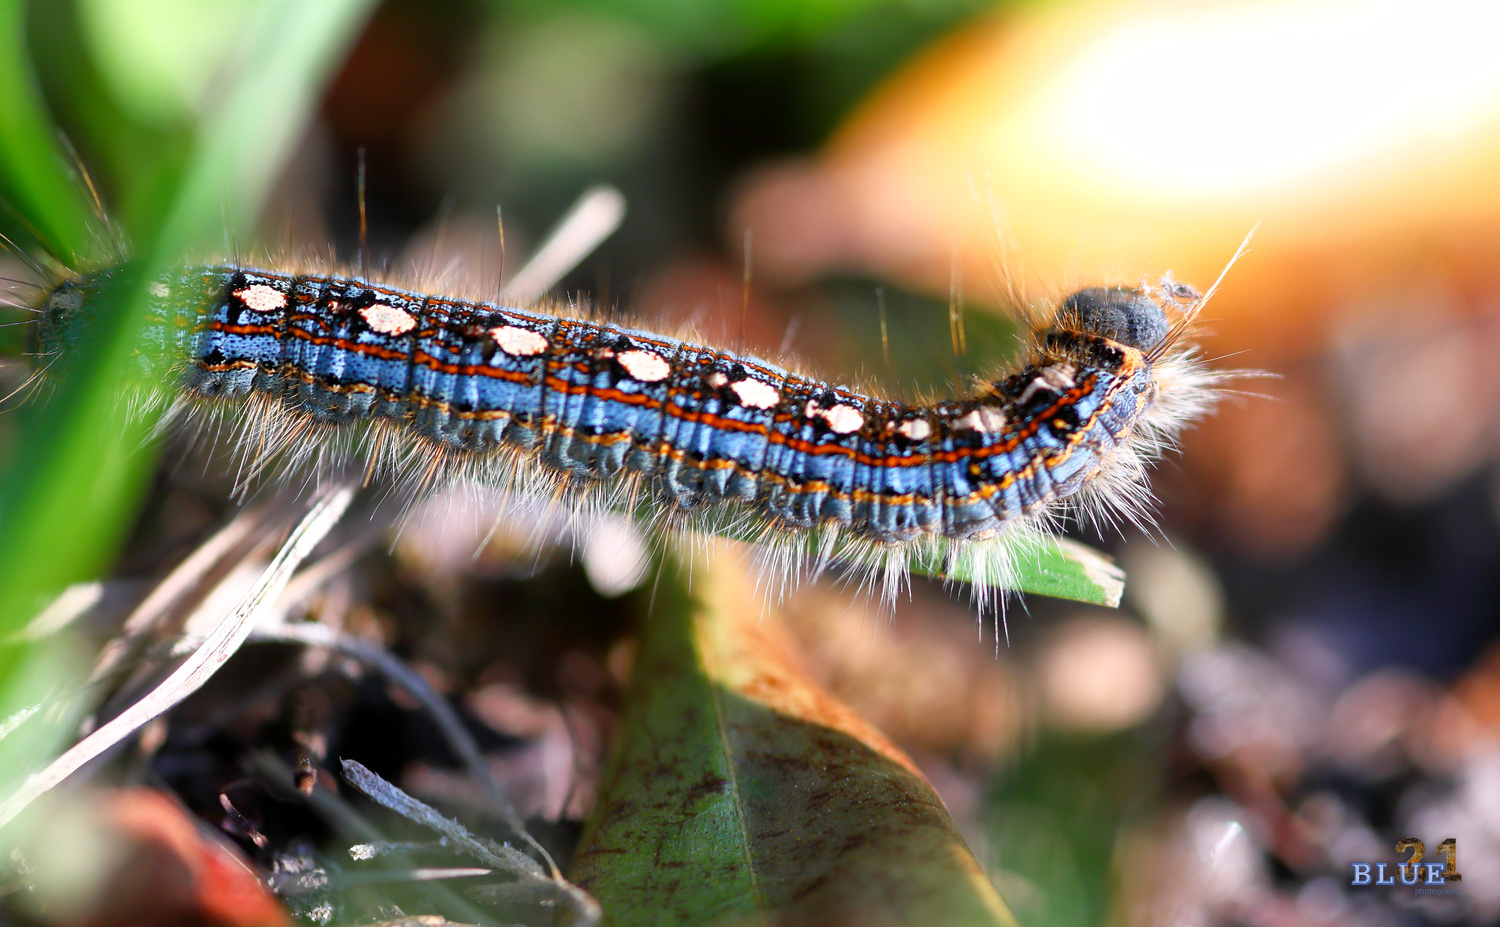 Caterpillar Close-up by BJ Priest